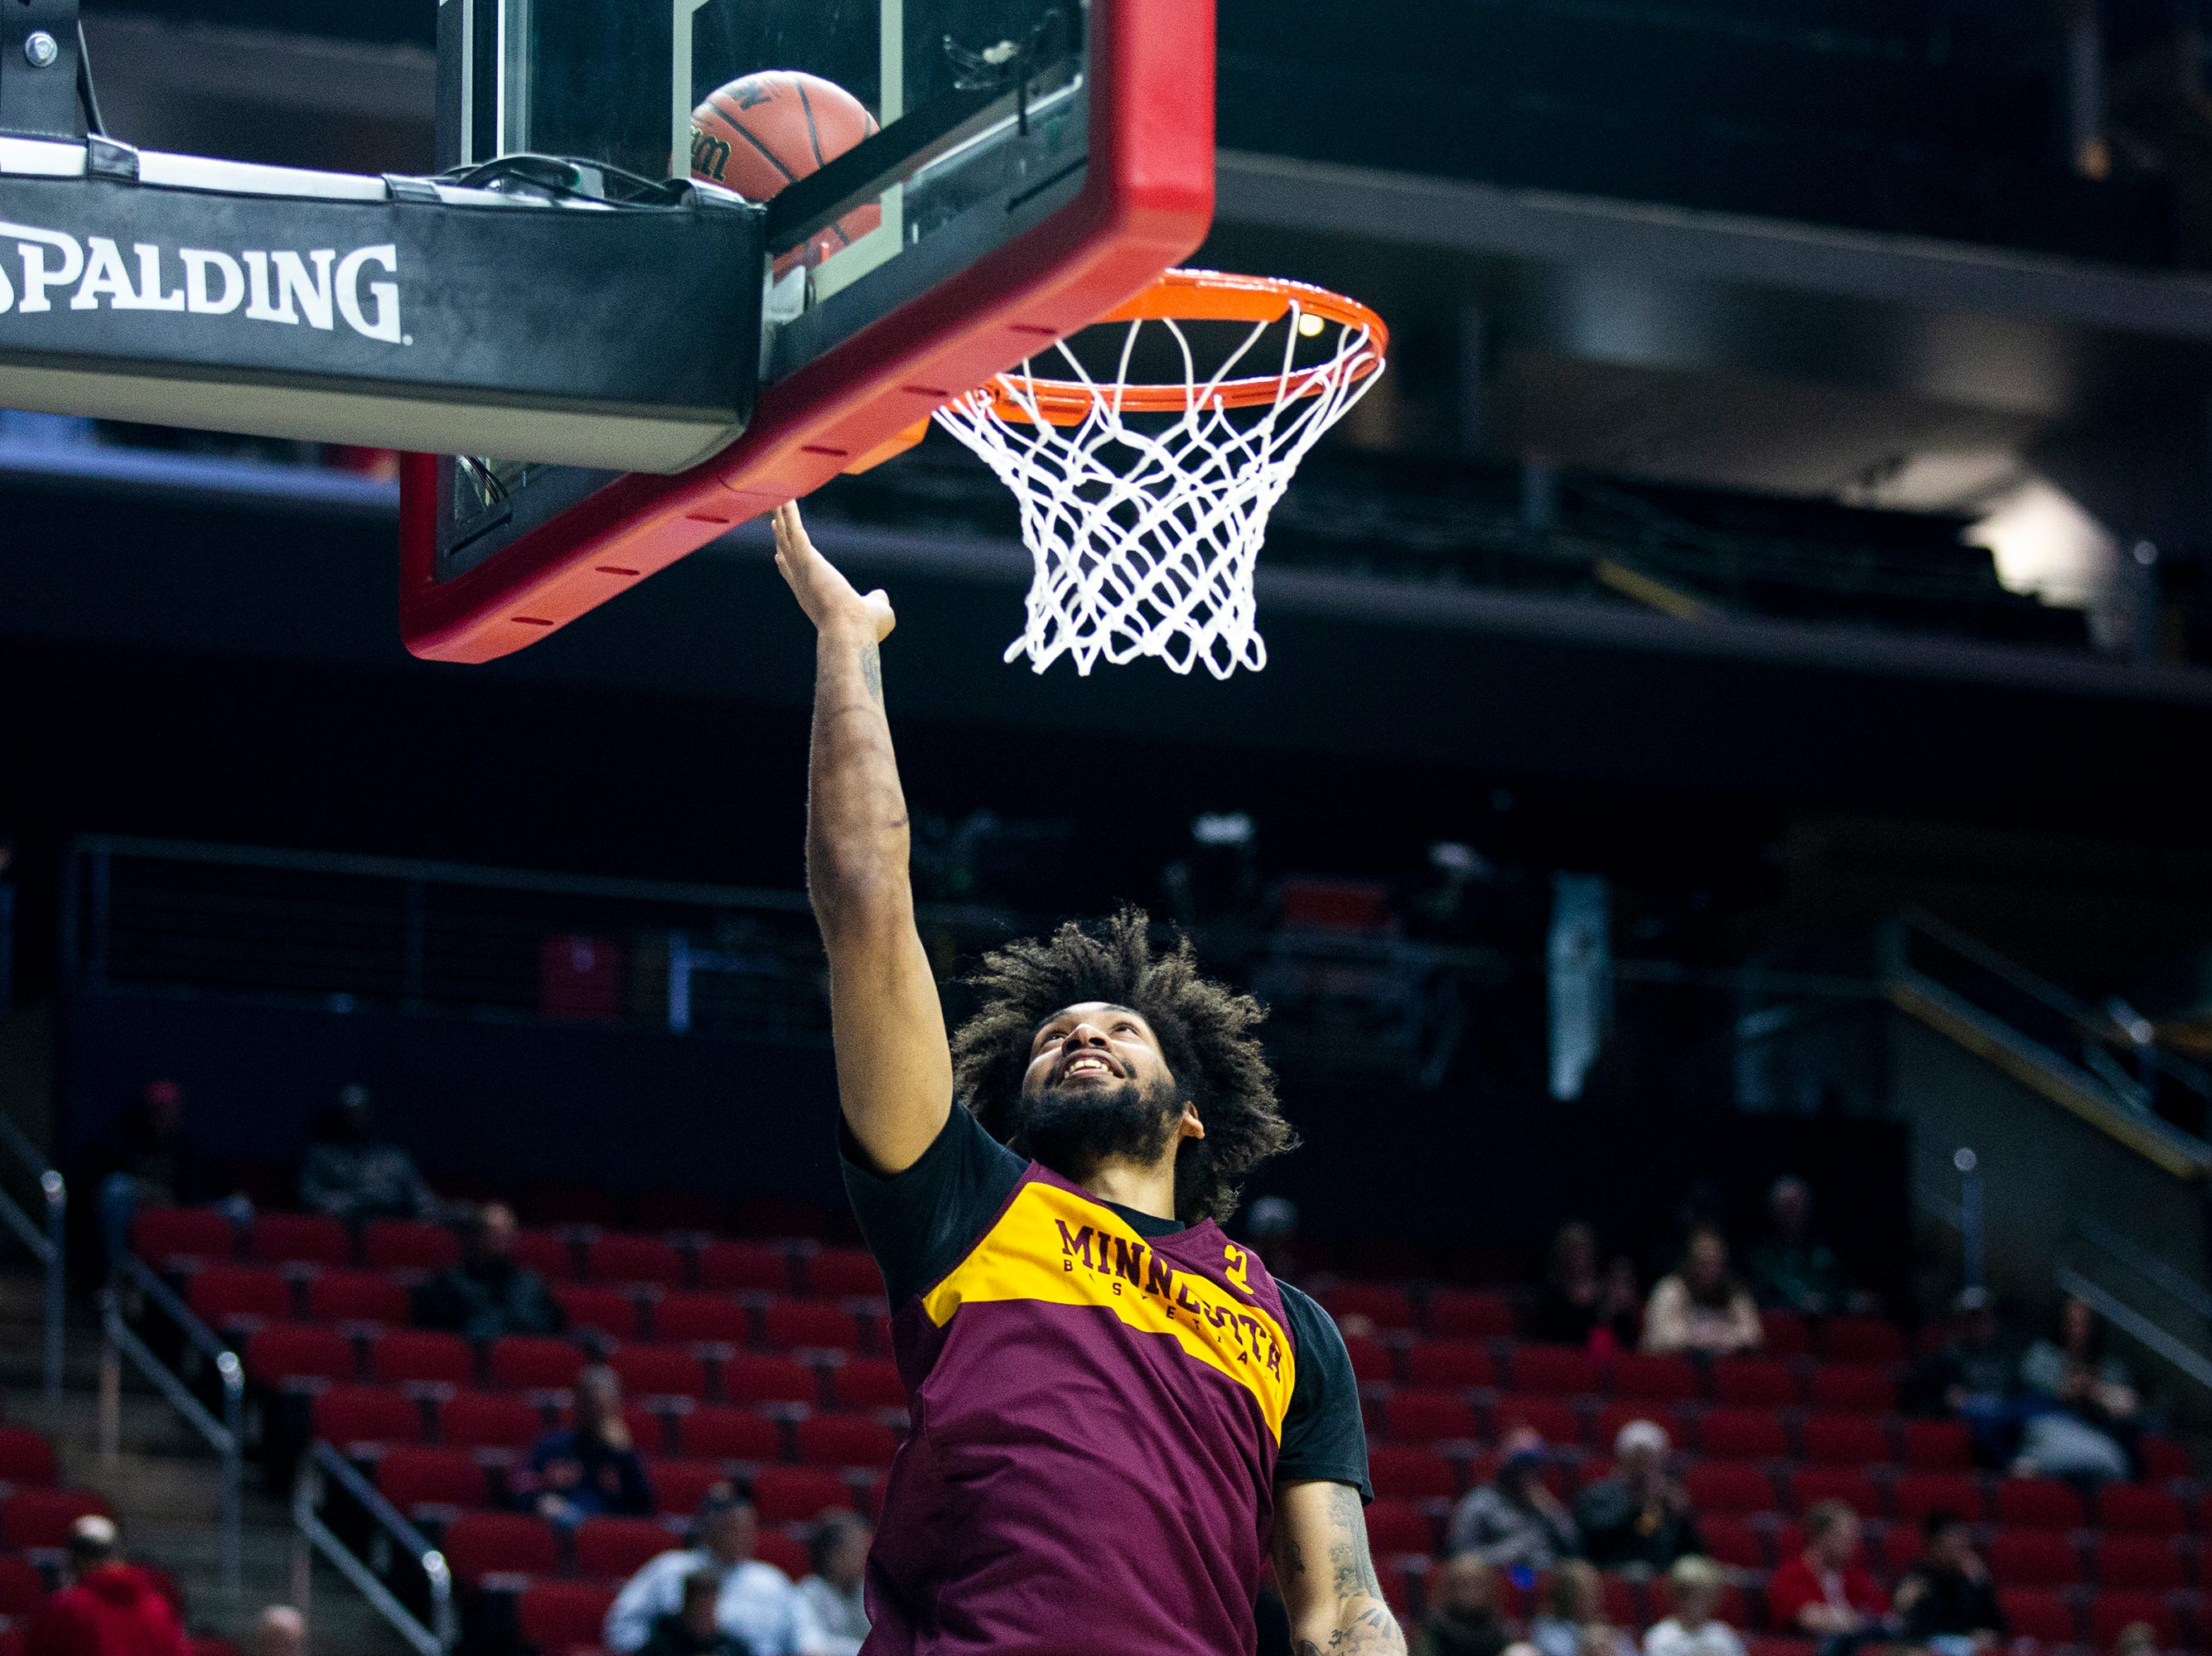 Minnesota's Jordan Murphy shoots the ball during Minnesota's open practice before the first round of the NCAA Men's Basketball Tournament on Wednesday, March 20, 2019, at Wells Fargo Arena in Des Moines, Iowa. Minnesota will face Louisville in the first round on Thursday.